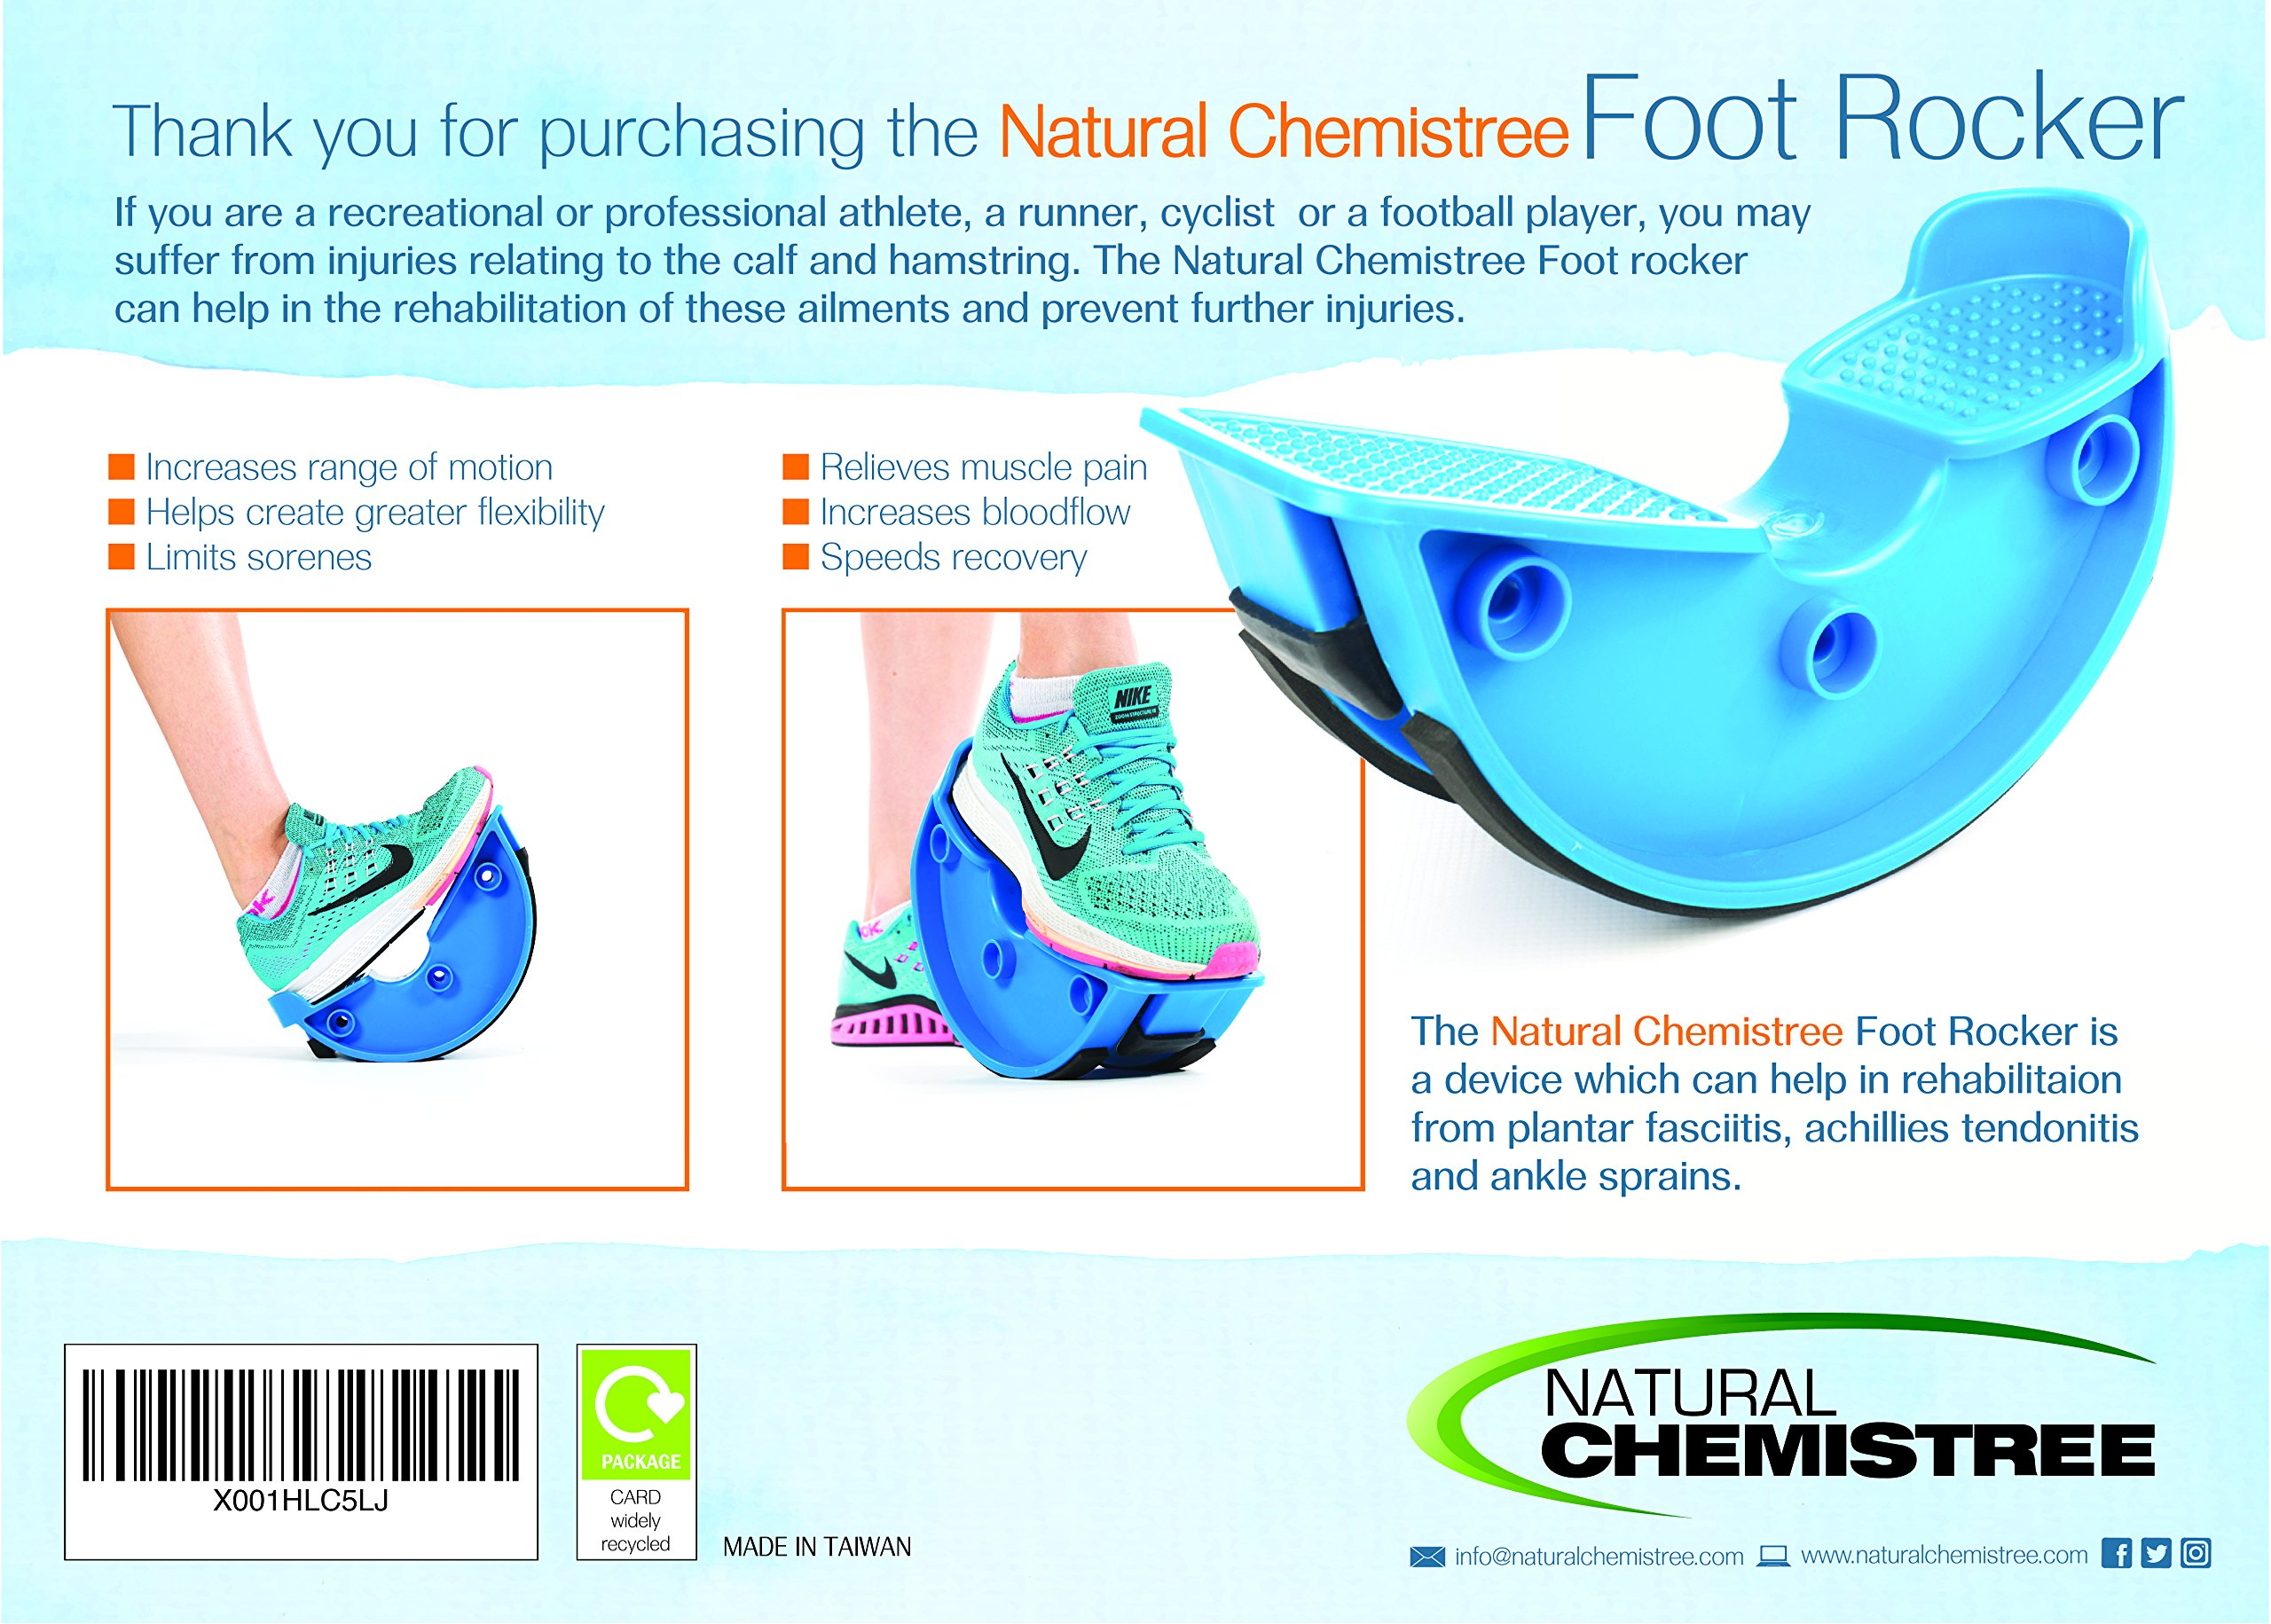 Foot Rocker. Durable Calf Stretcher Device for Achillies Tendonitis. Improve Plantar Fasciitis, Calf Flexibility, Ankle Mobility. Feet and Shin Splint Relief. Great for Physical Therapy, Athletes, Phy by Natural Chemistree (Image #7)